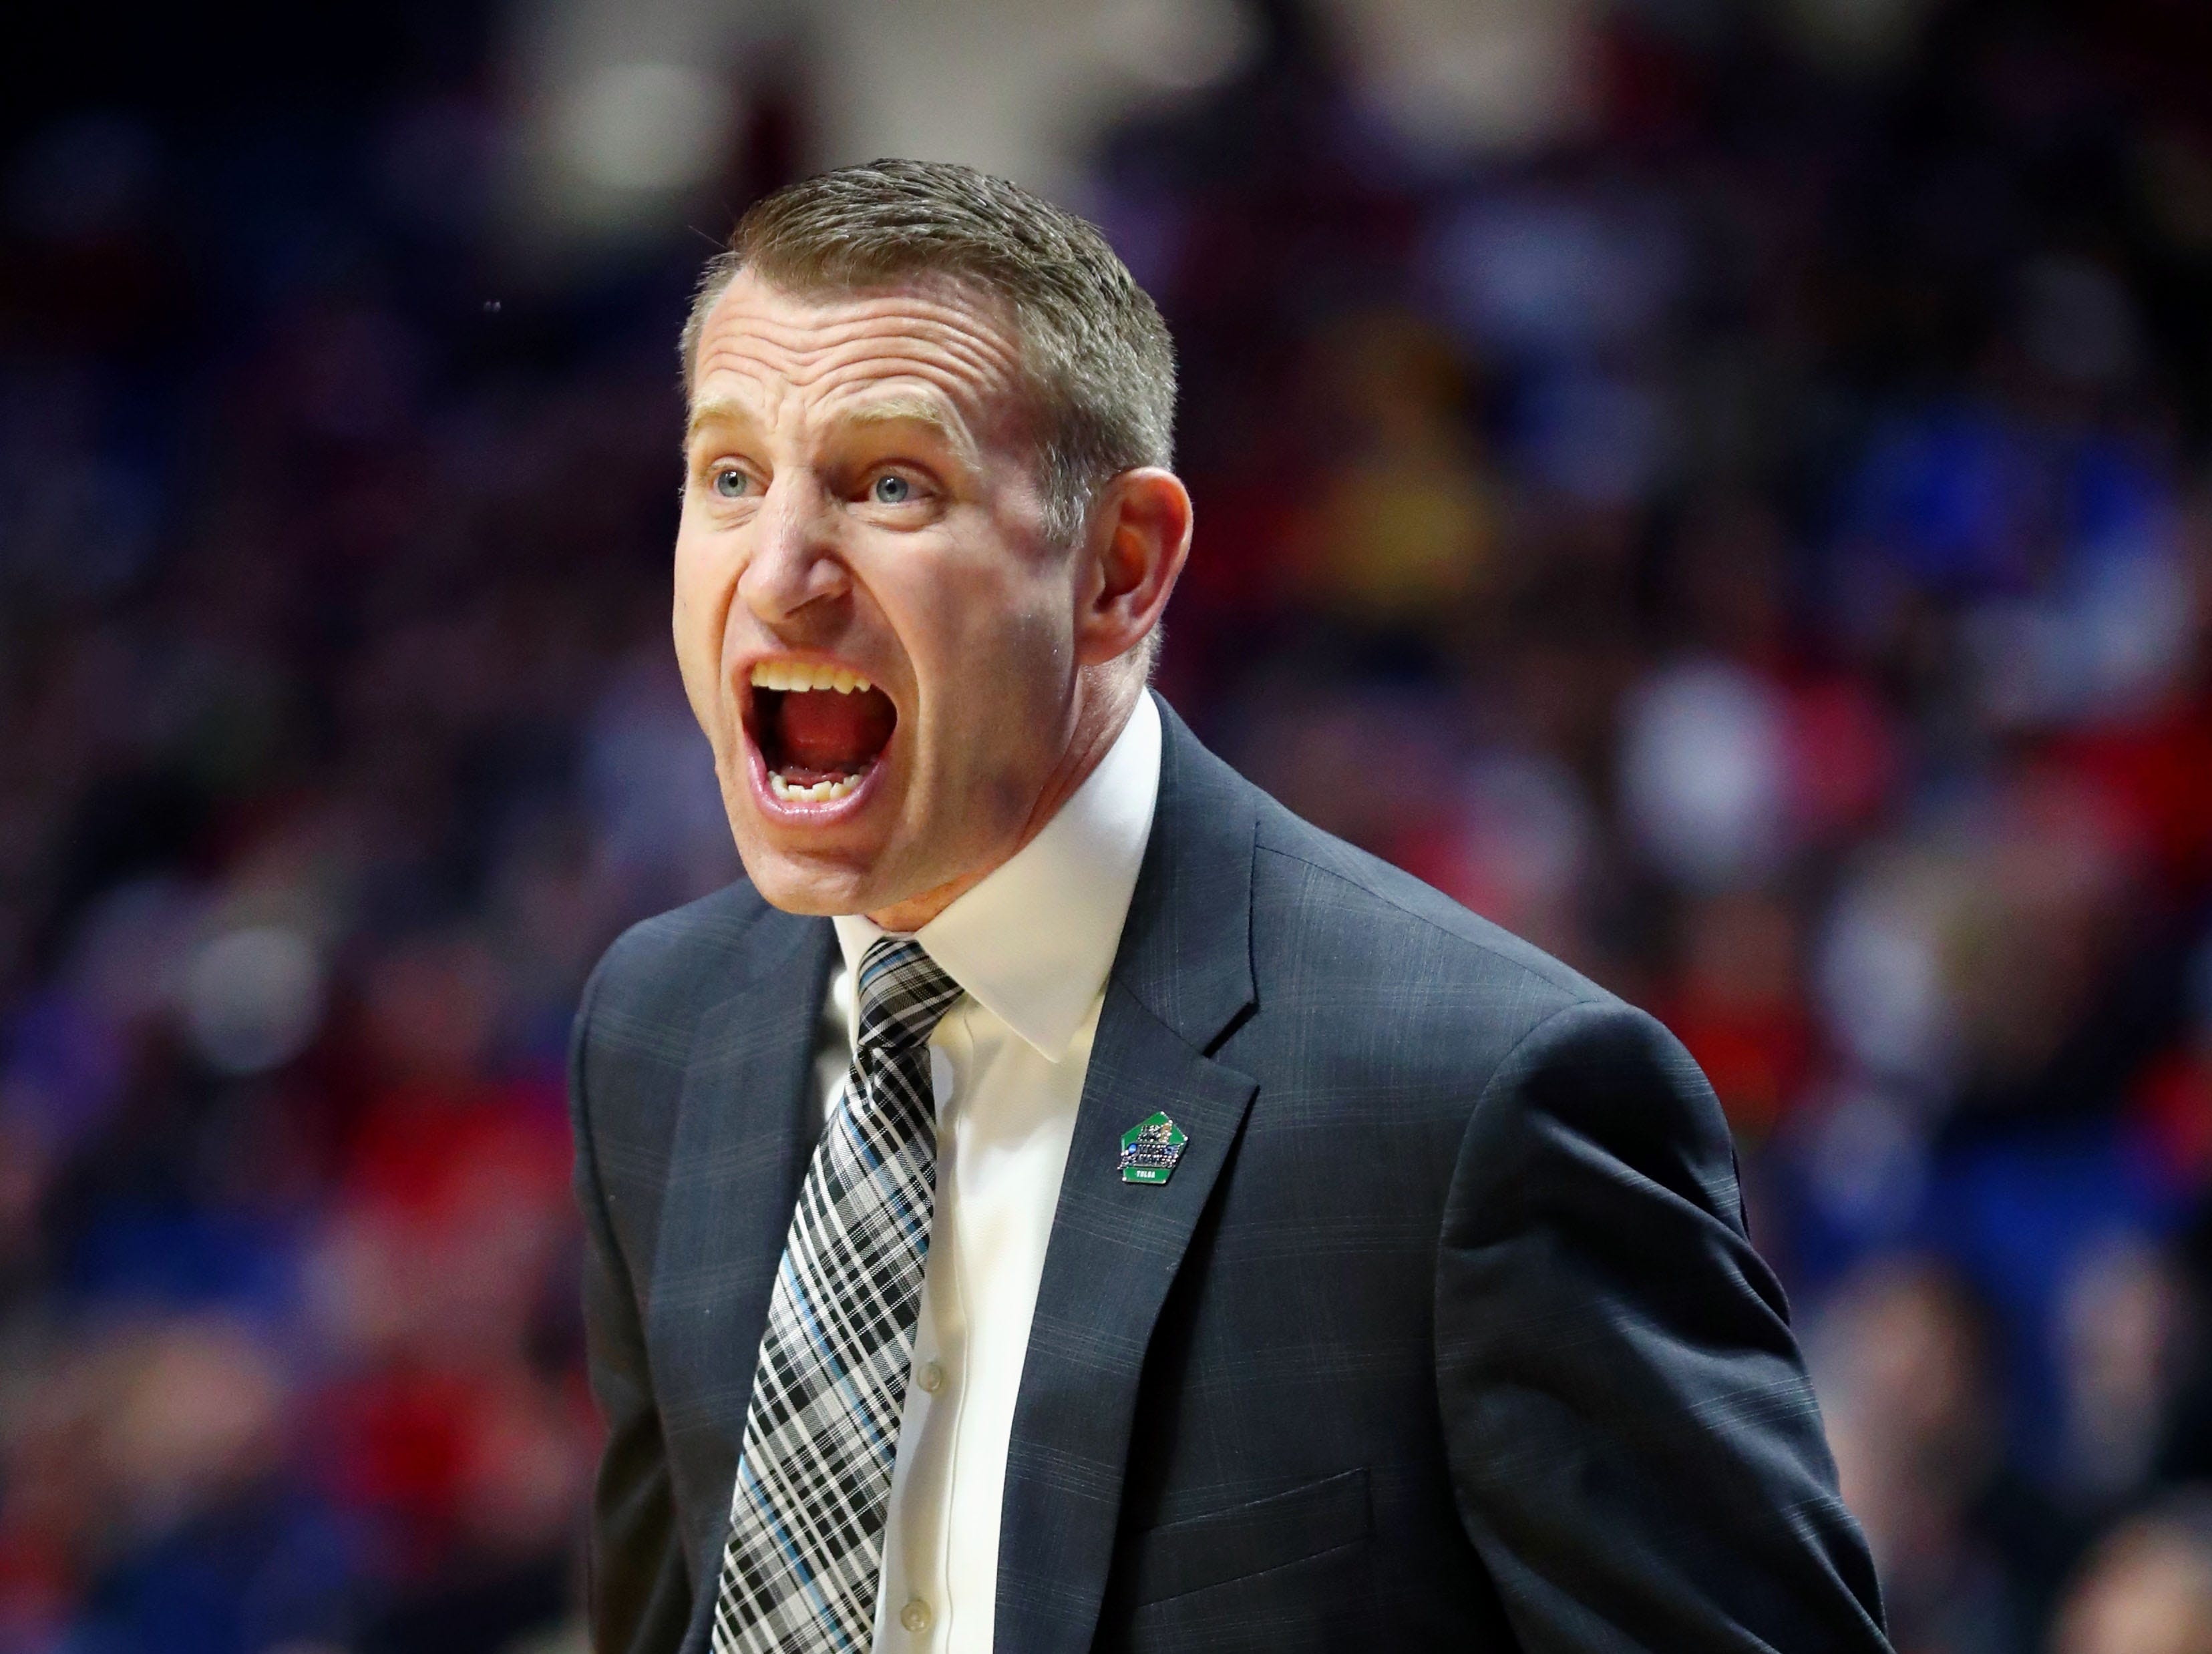 Mar 22, 2019; Tulsa, OK, USA; Buffalo Bulls head coach Nate Oats reacts during the first half of their game against the Arizona State Sun Devils in the first round of the 2019 NCAA Tournament at BOK Center. Mandatory Credit: Mark J. Rebilas-USA TODAY Sports